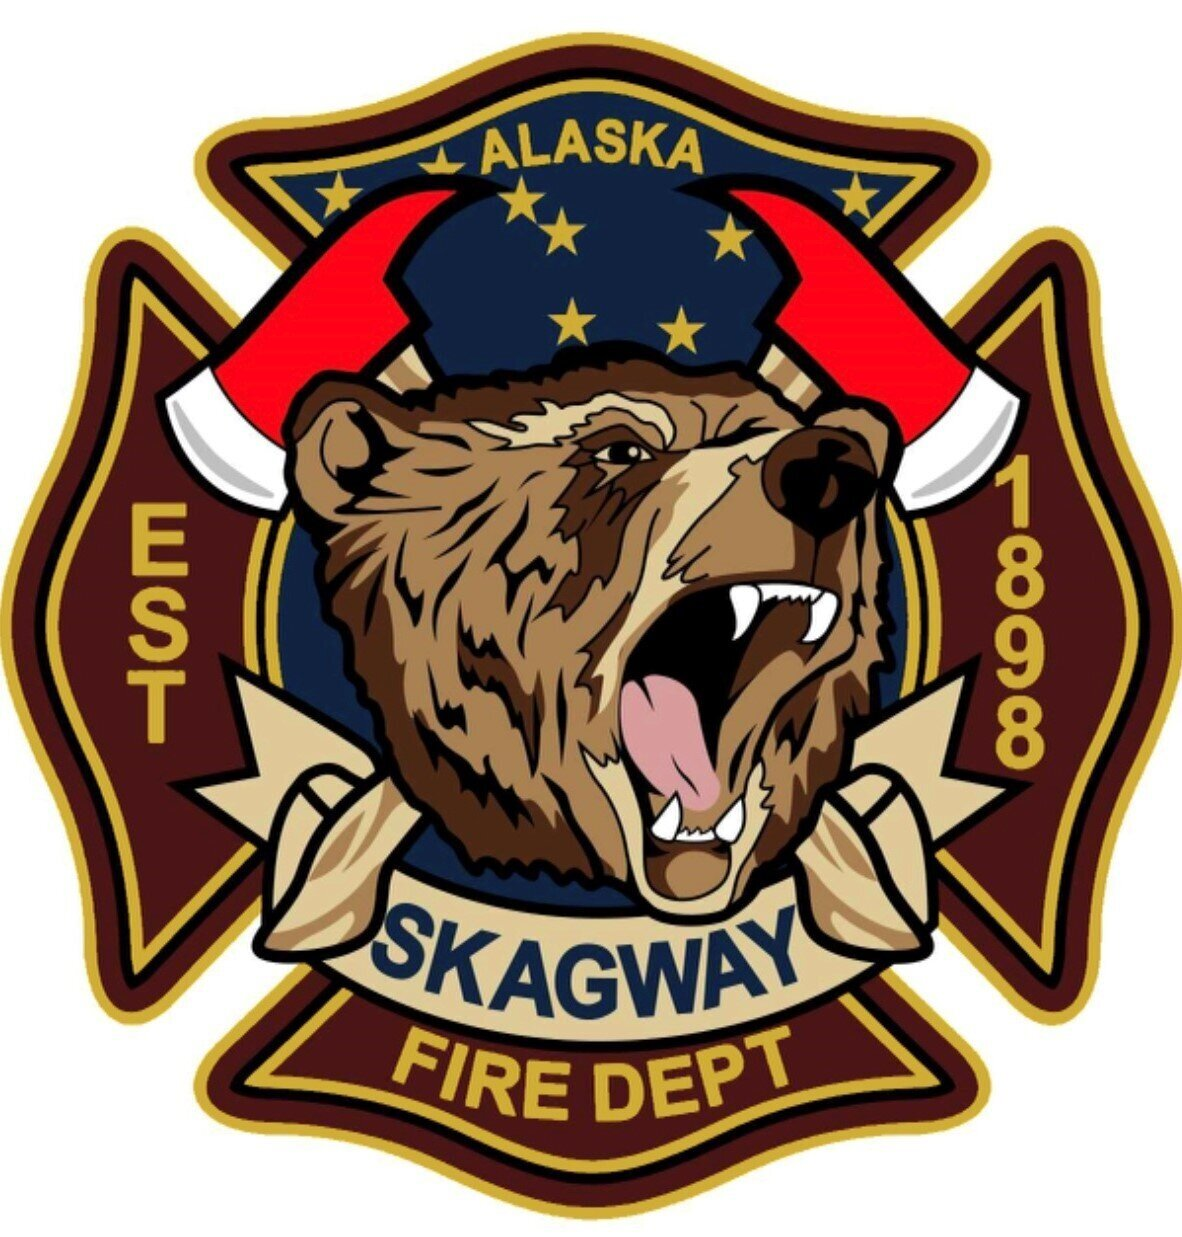 Skagway Volunteer Fire Department